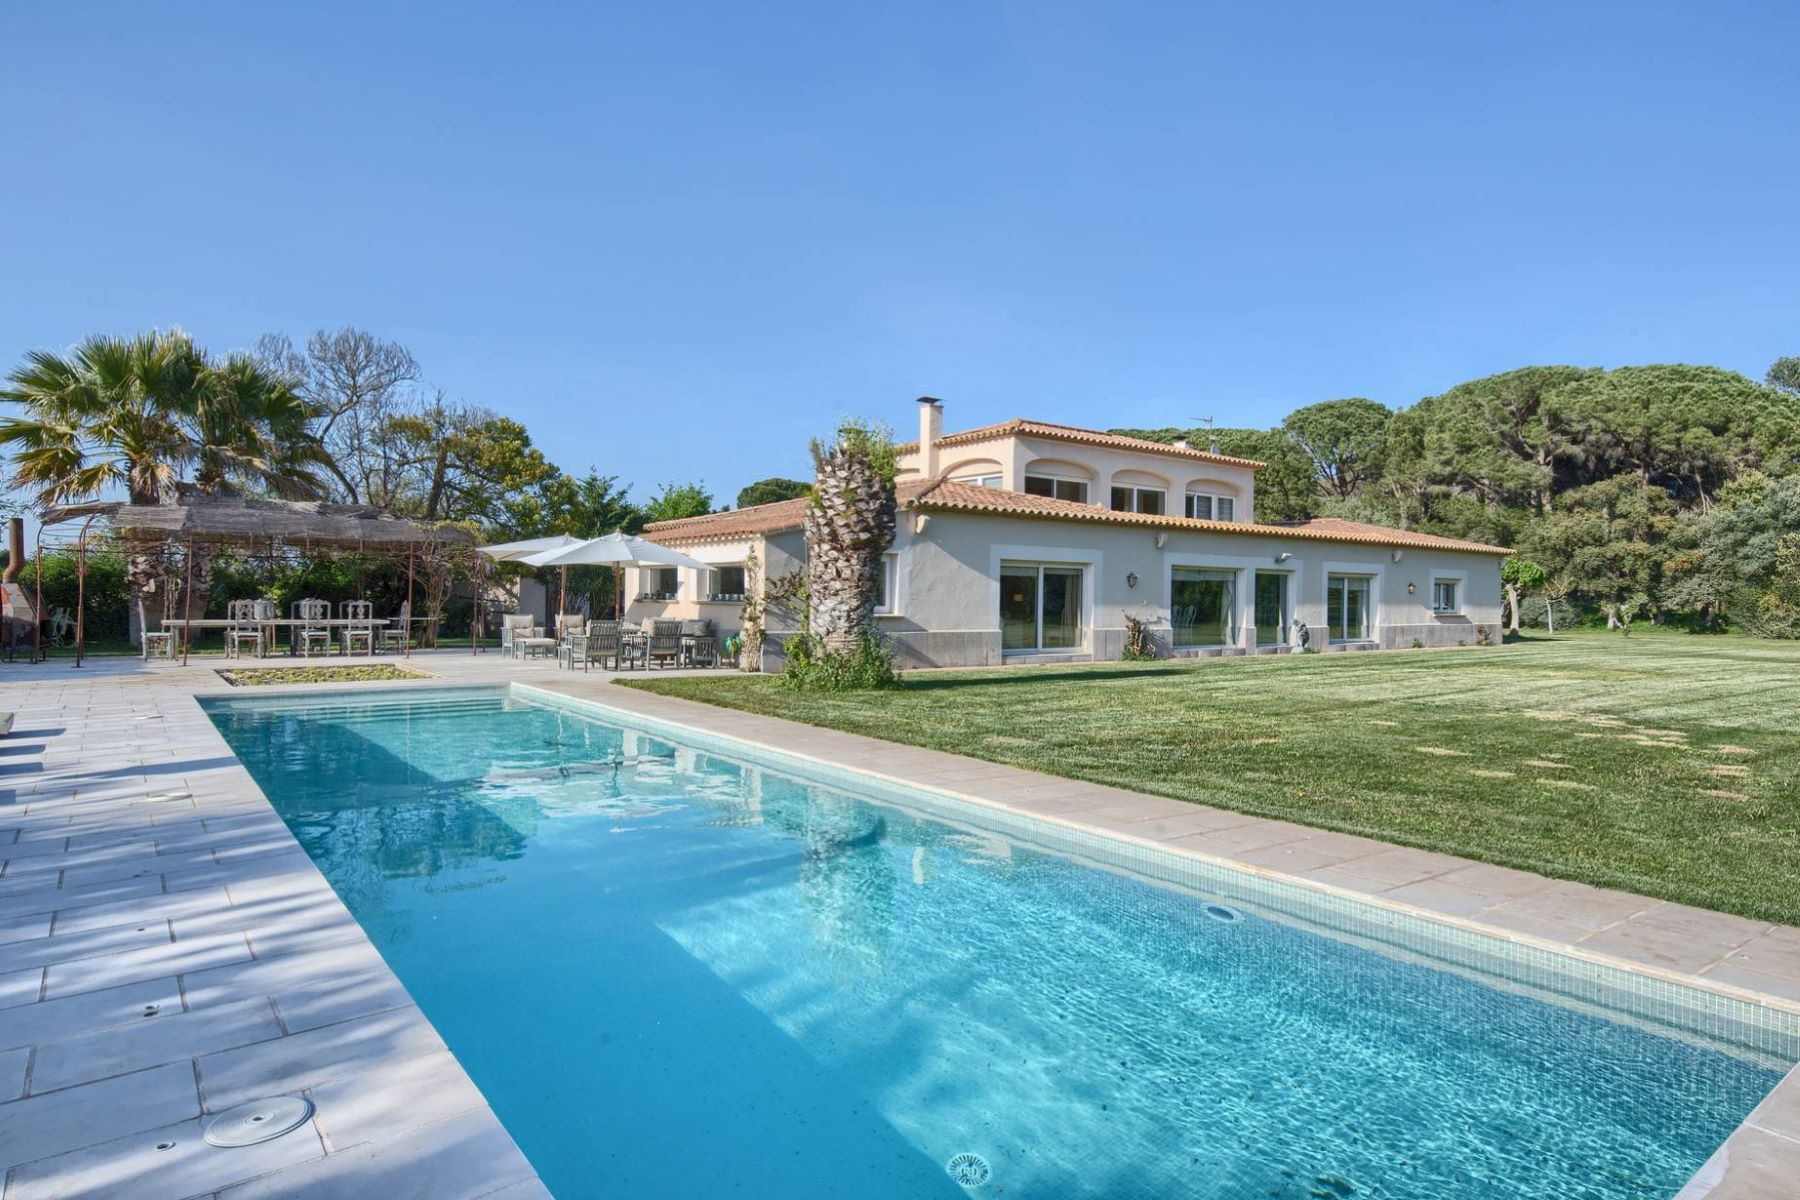 Maison unifamiliale pour l Vente à Exclusive property in the heart of Pals, between the beach and Golf Pals, Costa Brava, 17256 Espagne